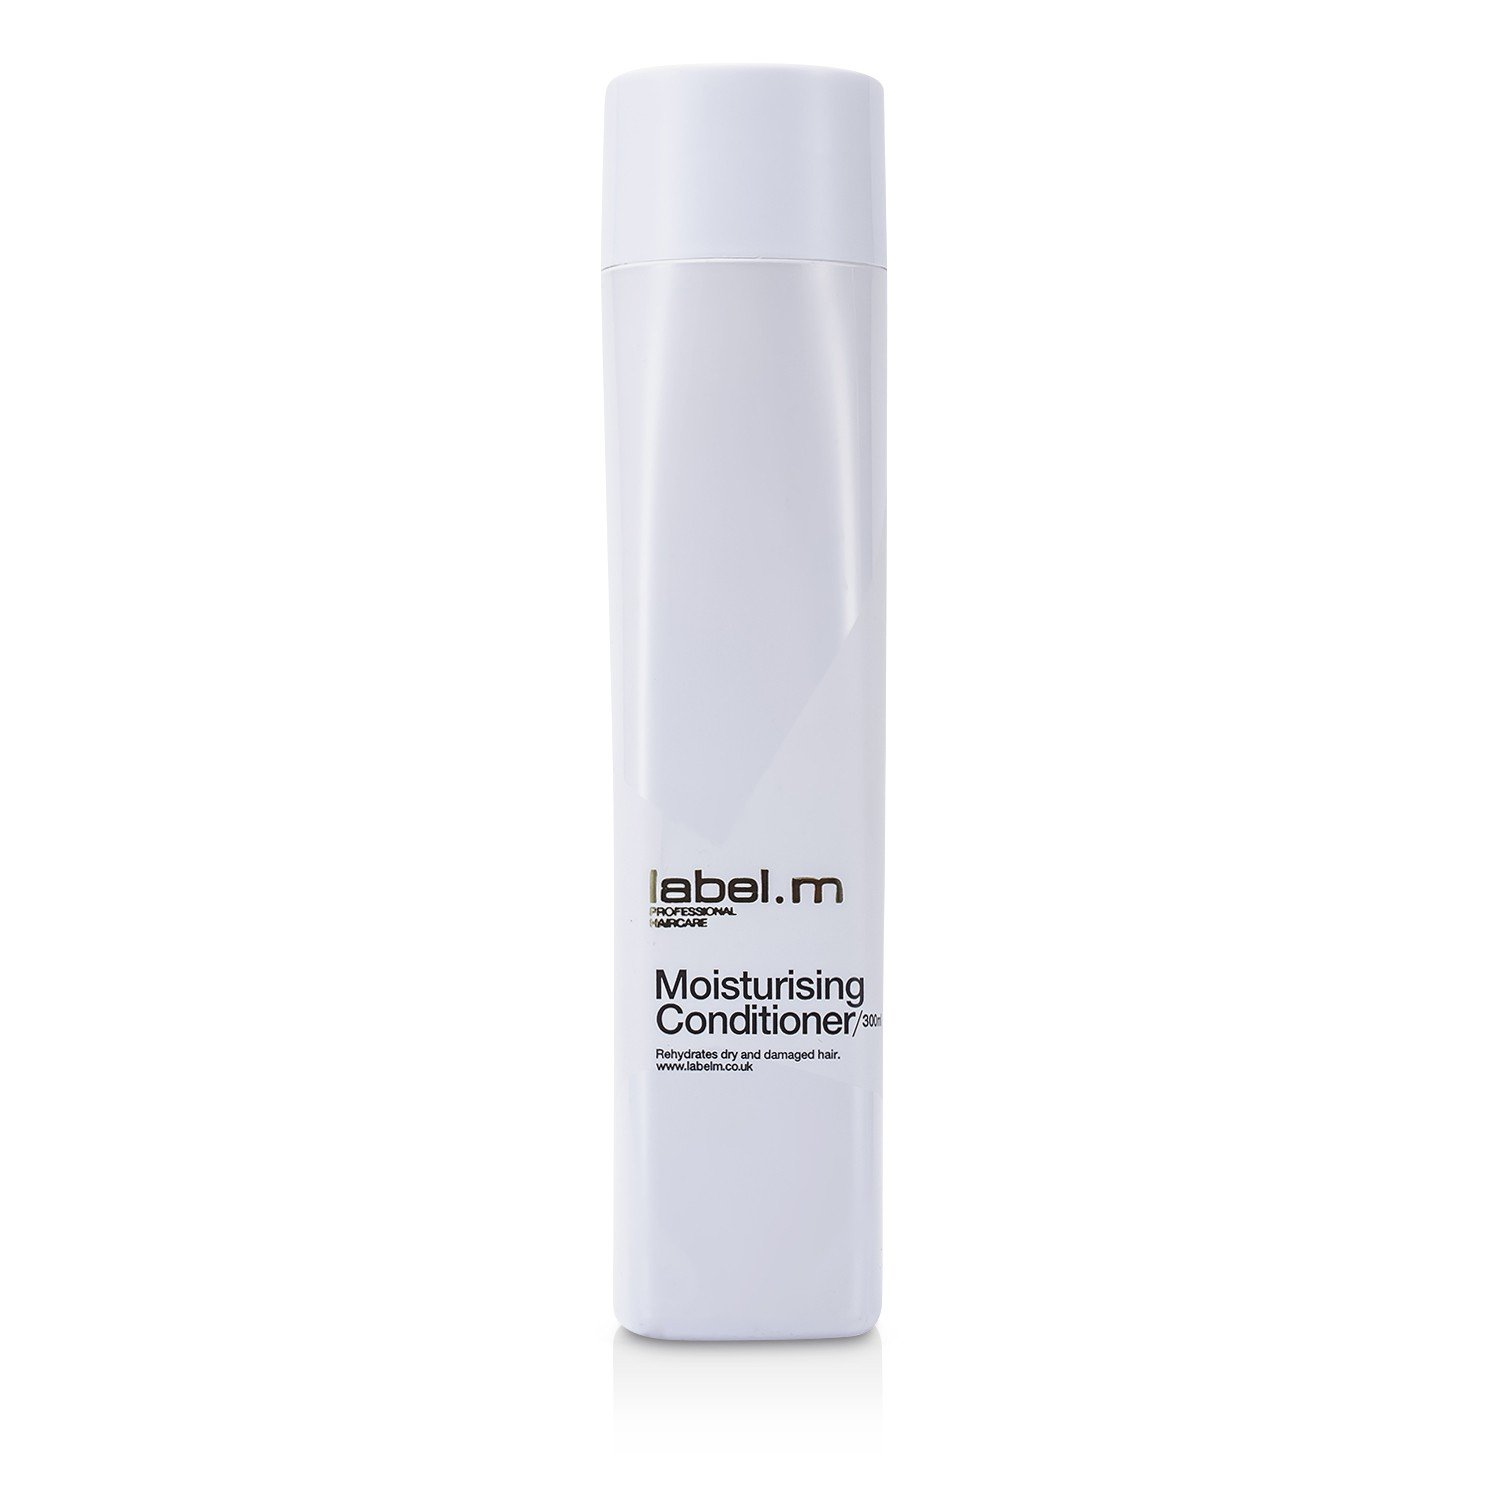 label.m Moisturising Conditioner (For Dry and Damaged Hair) - 300ml/10.1oz